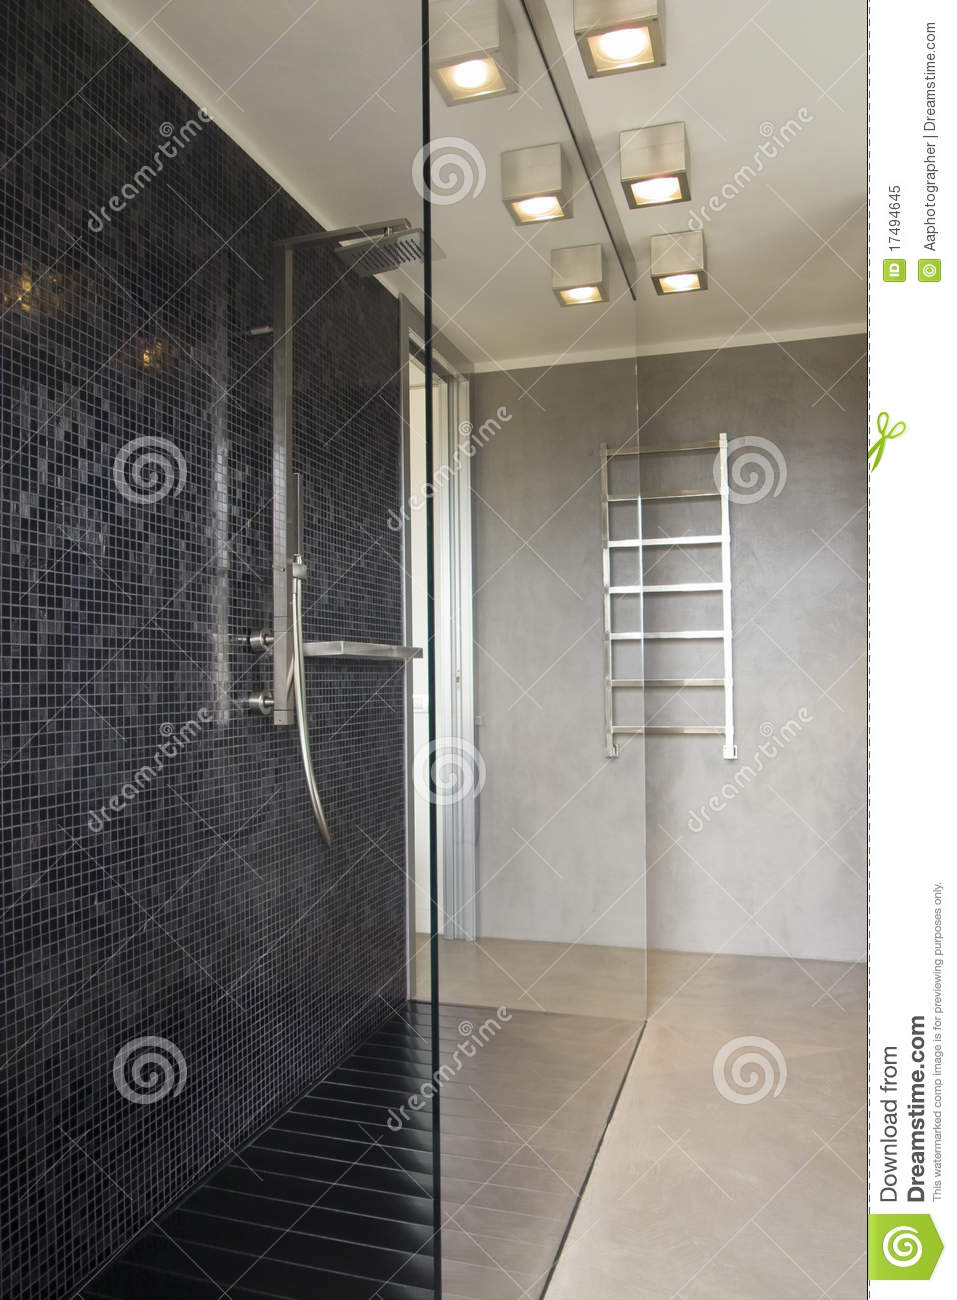 Douche in moderne badkamers royalty vrije stock foto - Photos douches modernes ...